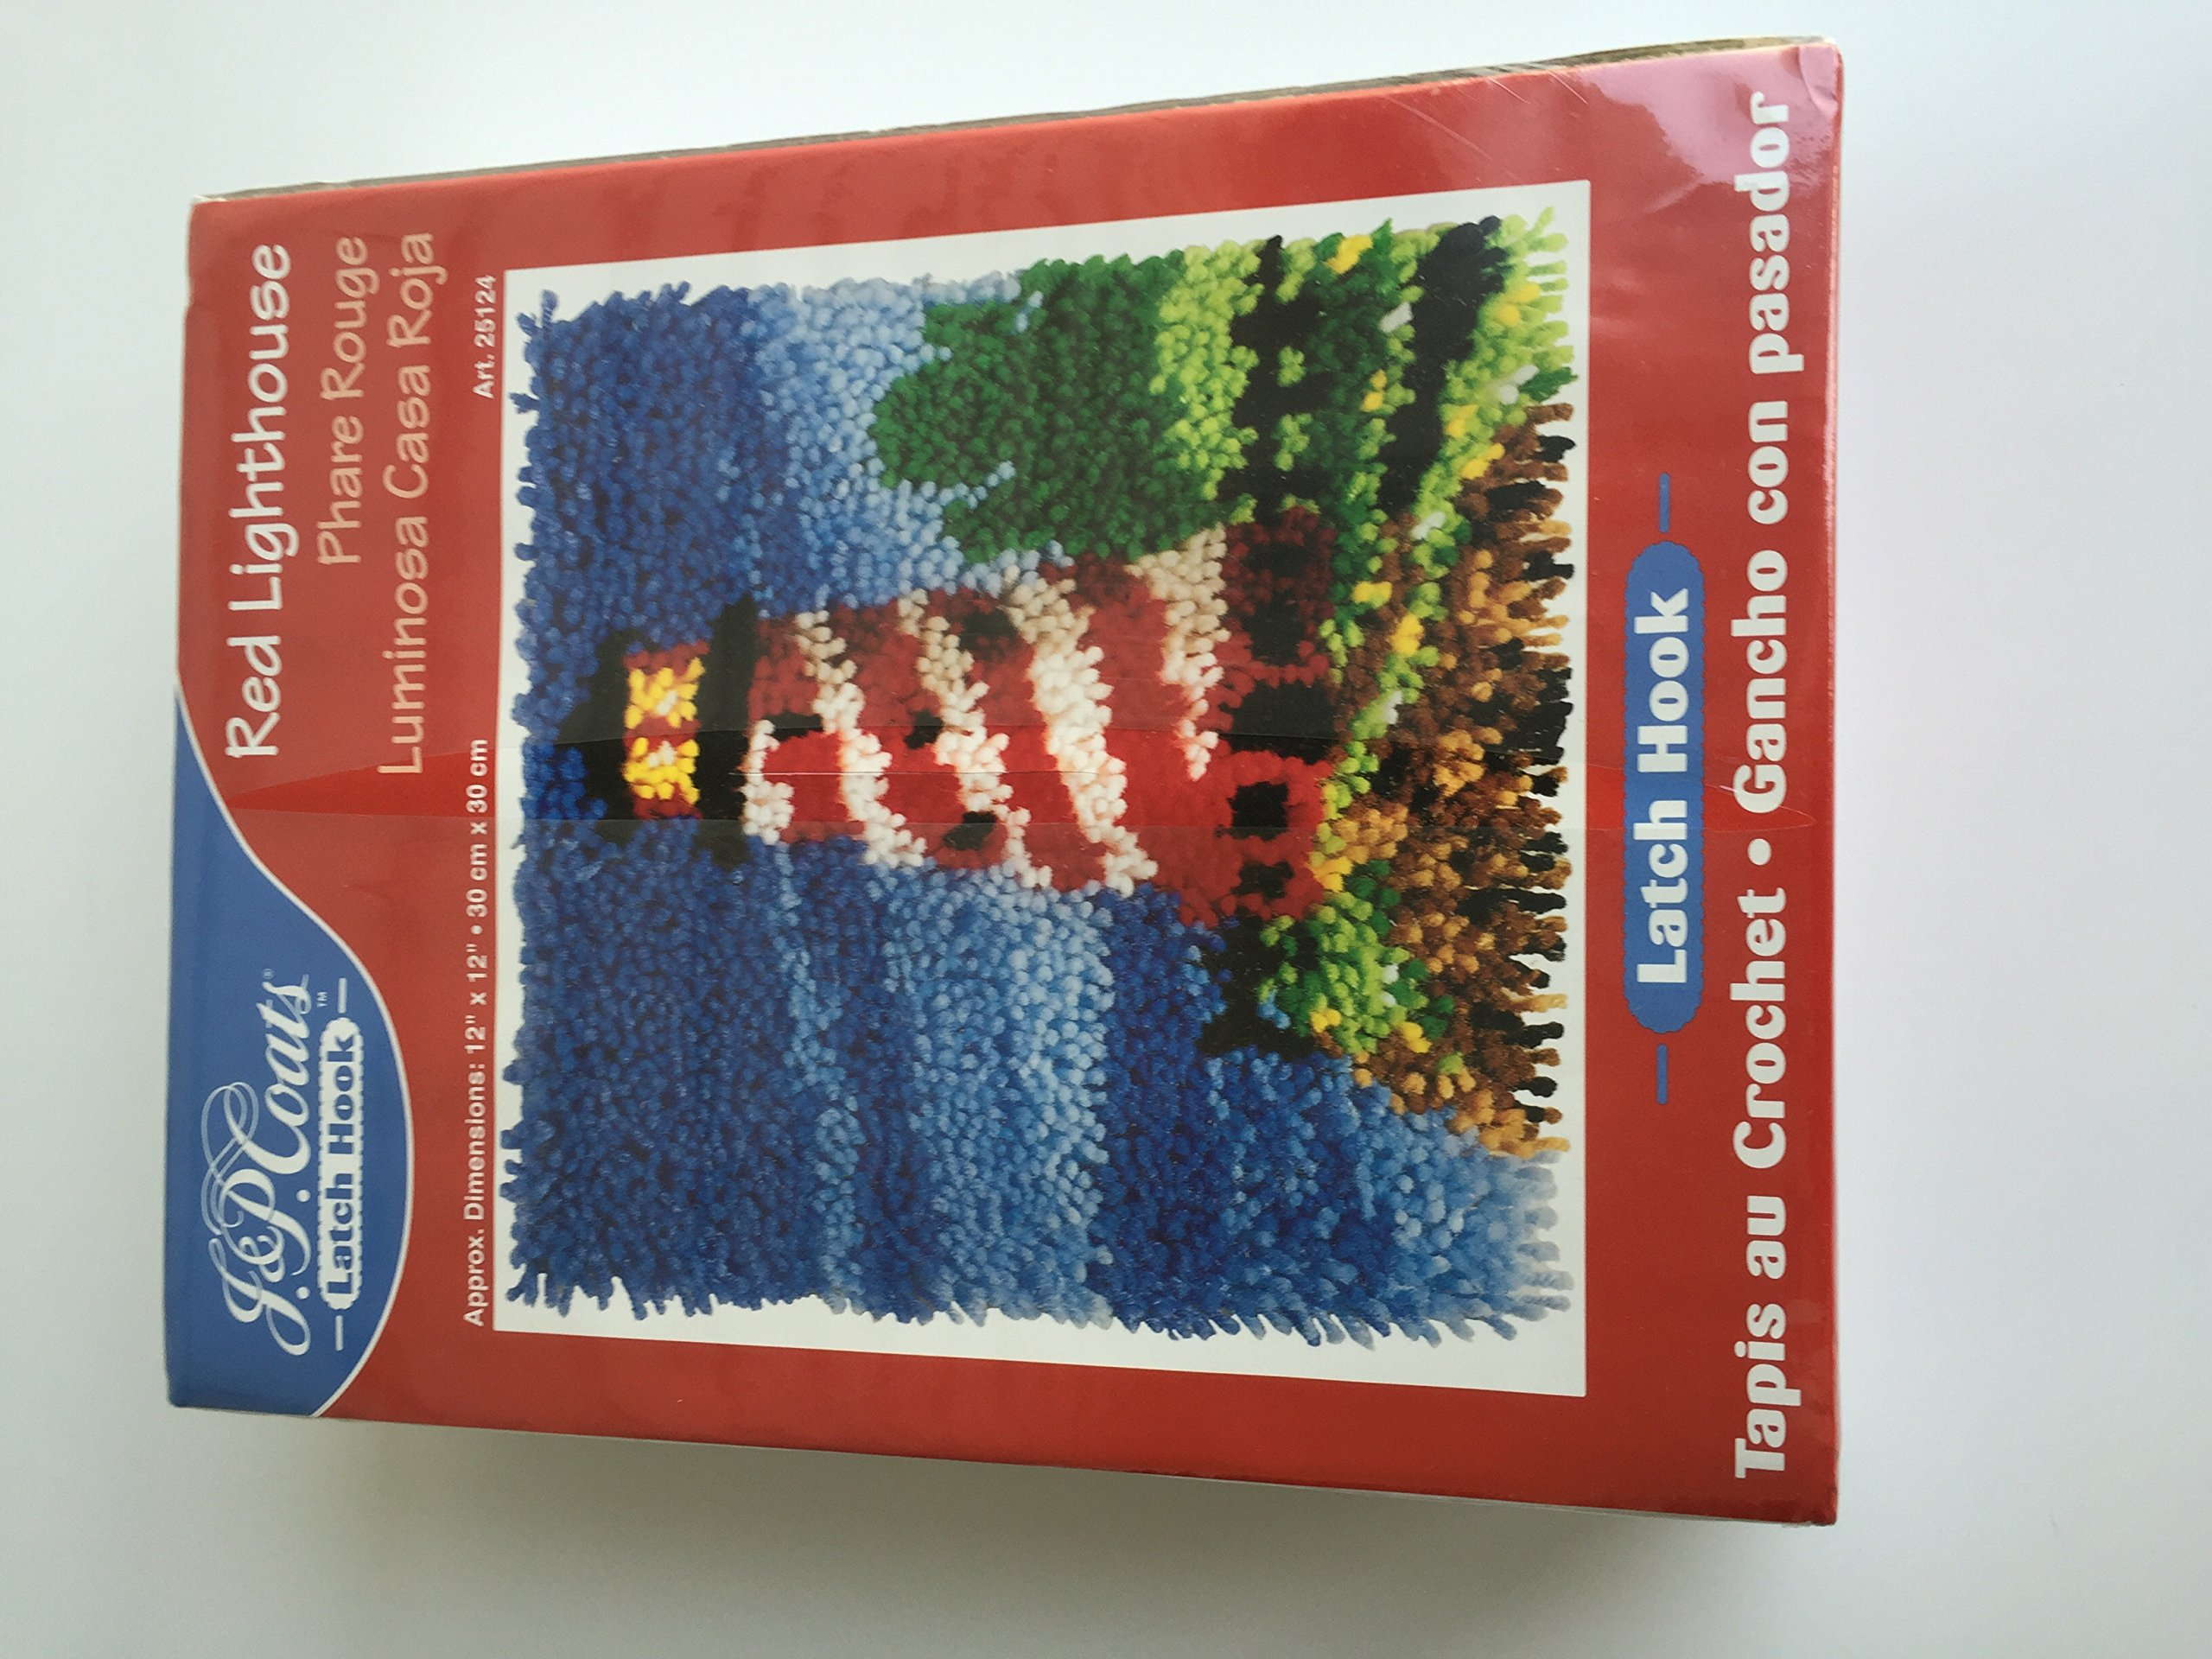 J. & P. Coats Latch Hook Rug Kit# 25124 - Red Lighthouse